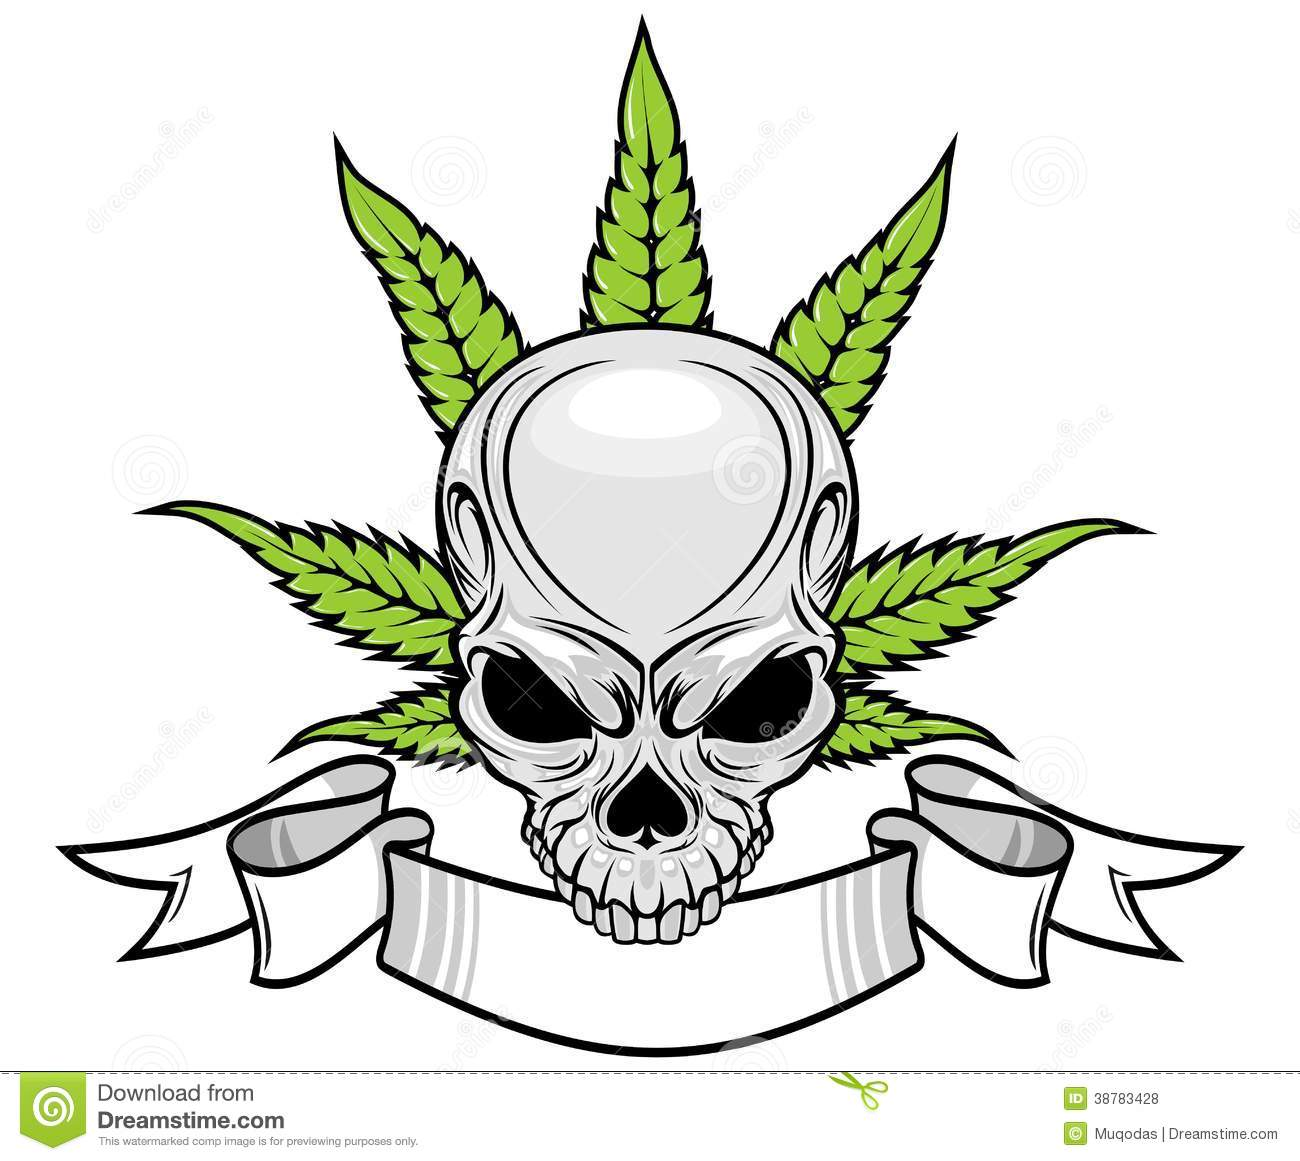 Skull And Weed Stock Vector - Image: 38783428